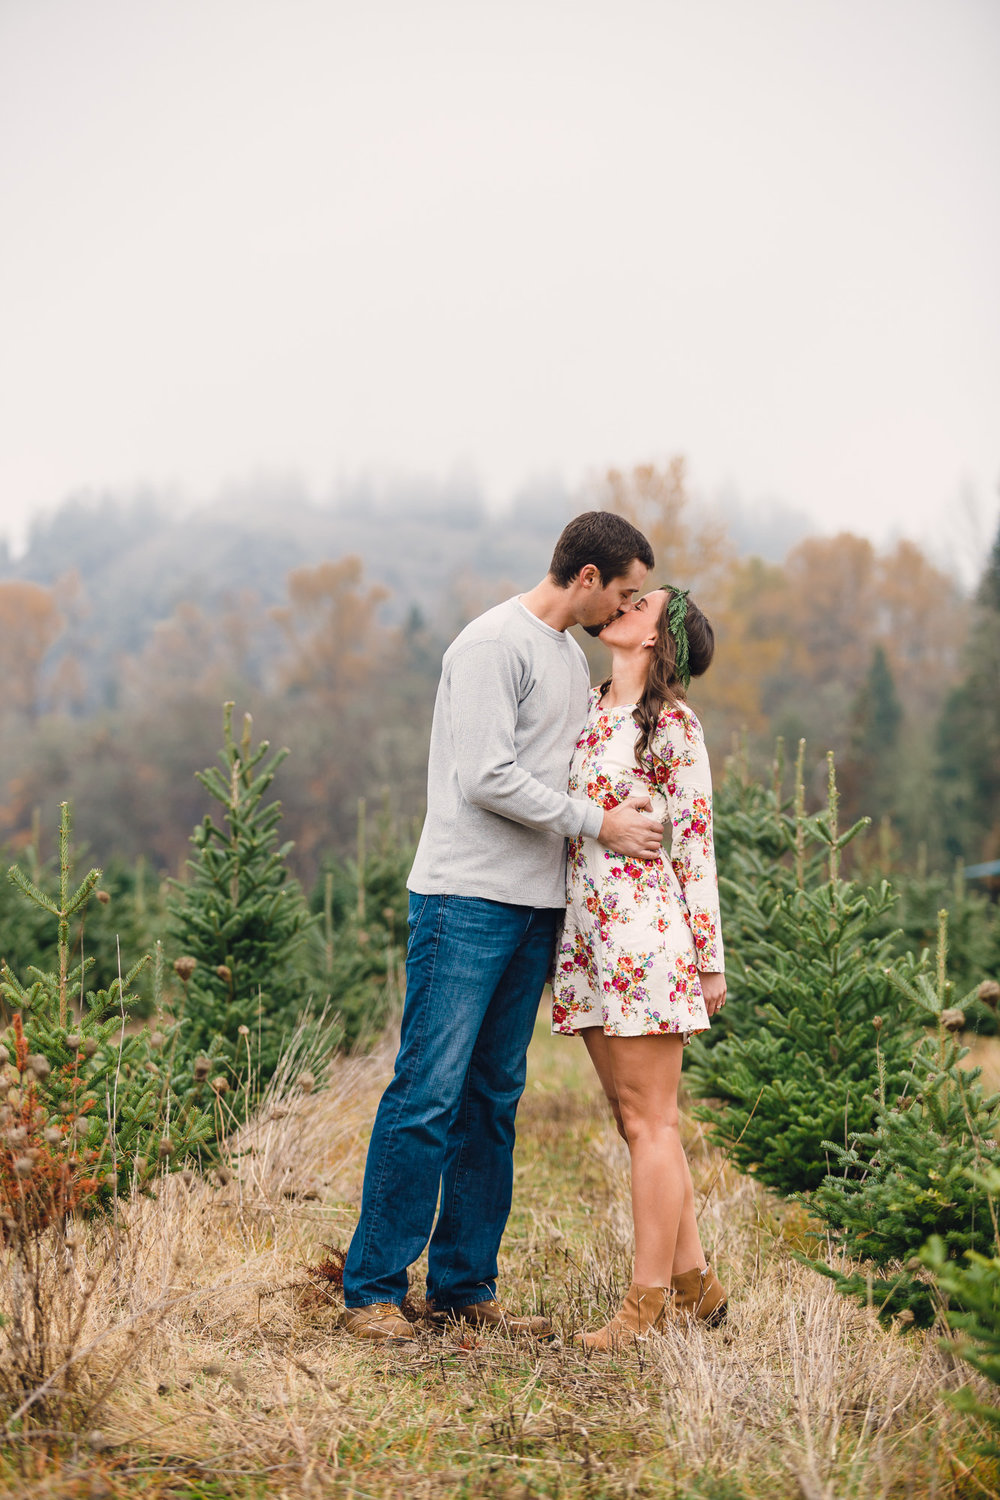 Vintage Chevy Truck Engagement Photos - Christmas Tree Farm Engagement Photos by Joshua Rainey Photography